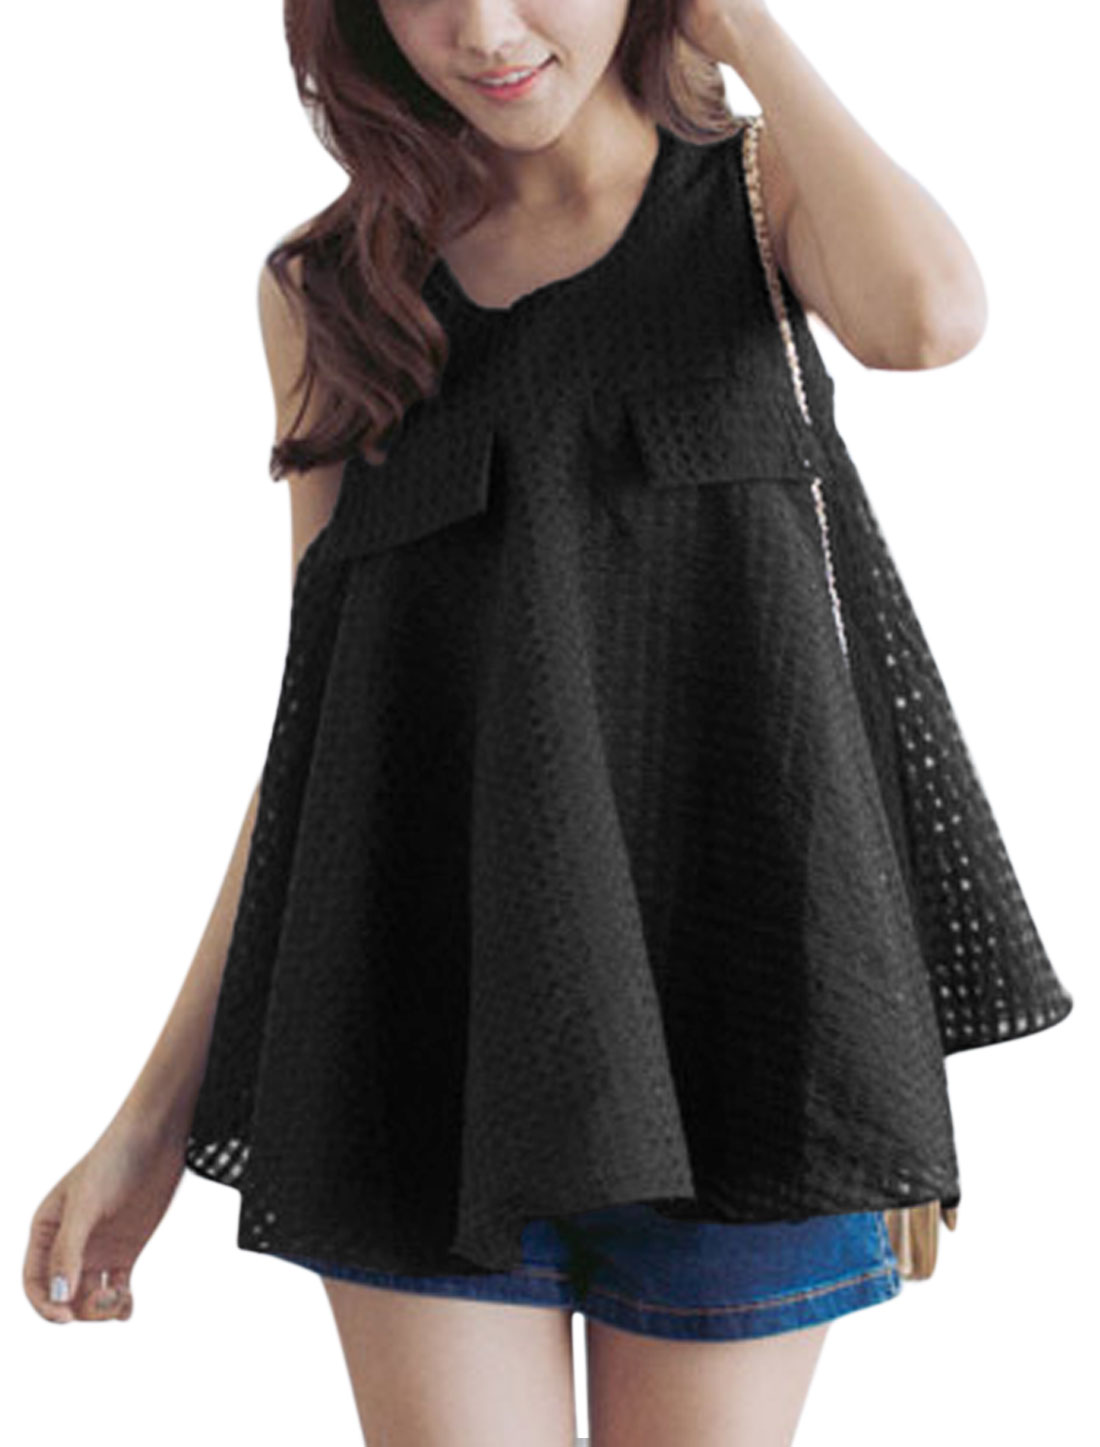 Ladies U Neck Plaids Design Fake Flap Pockets Sweet Tank Top Black S